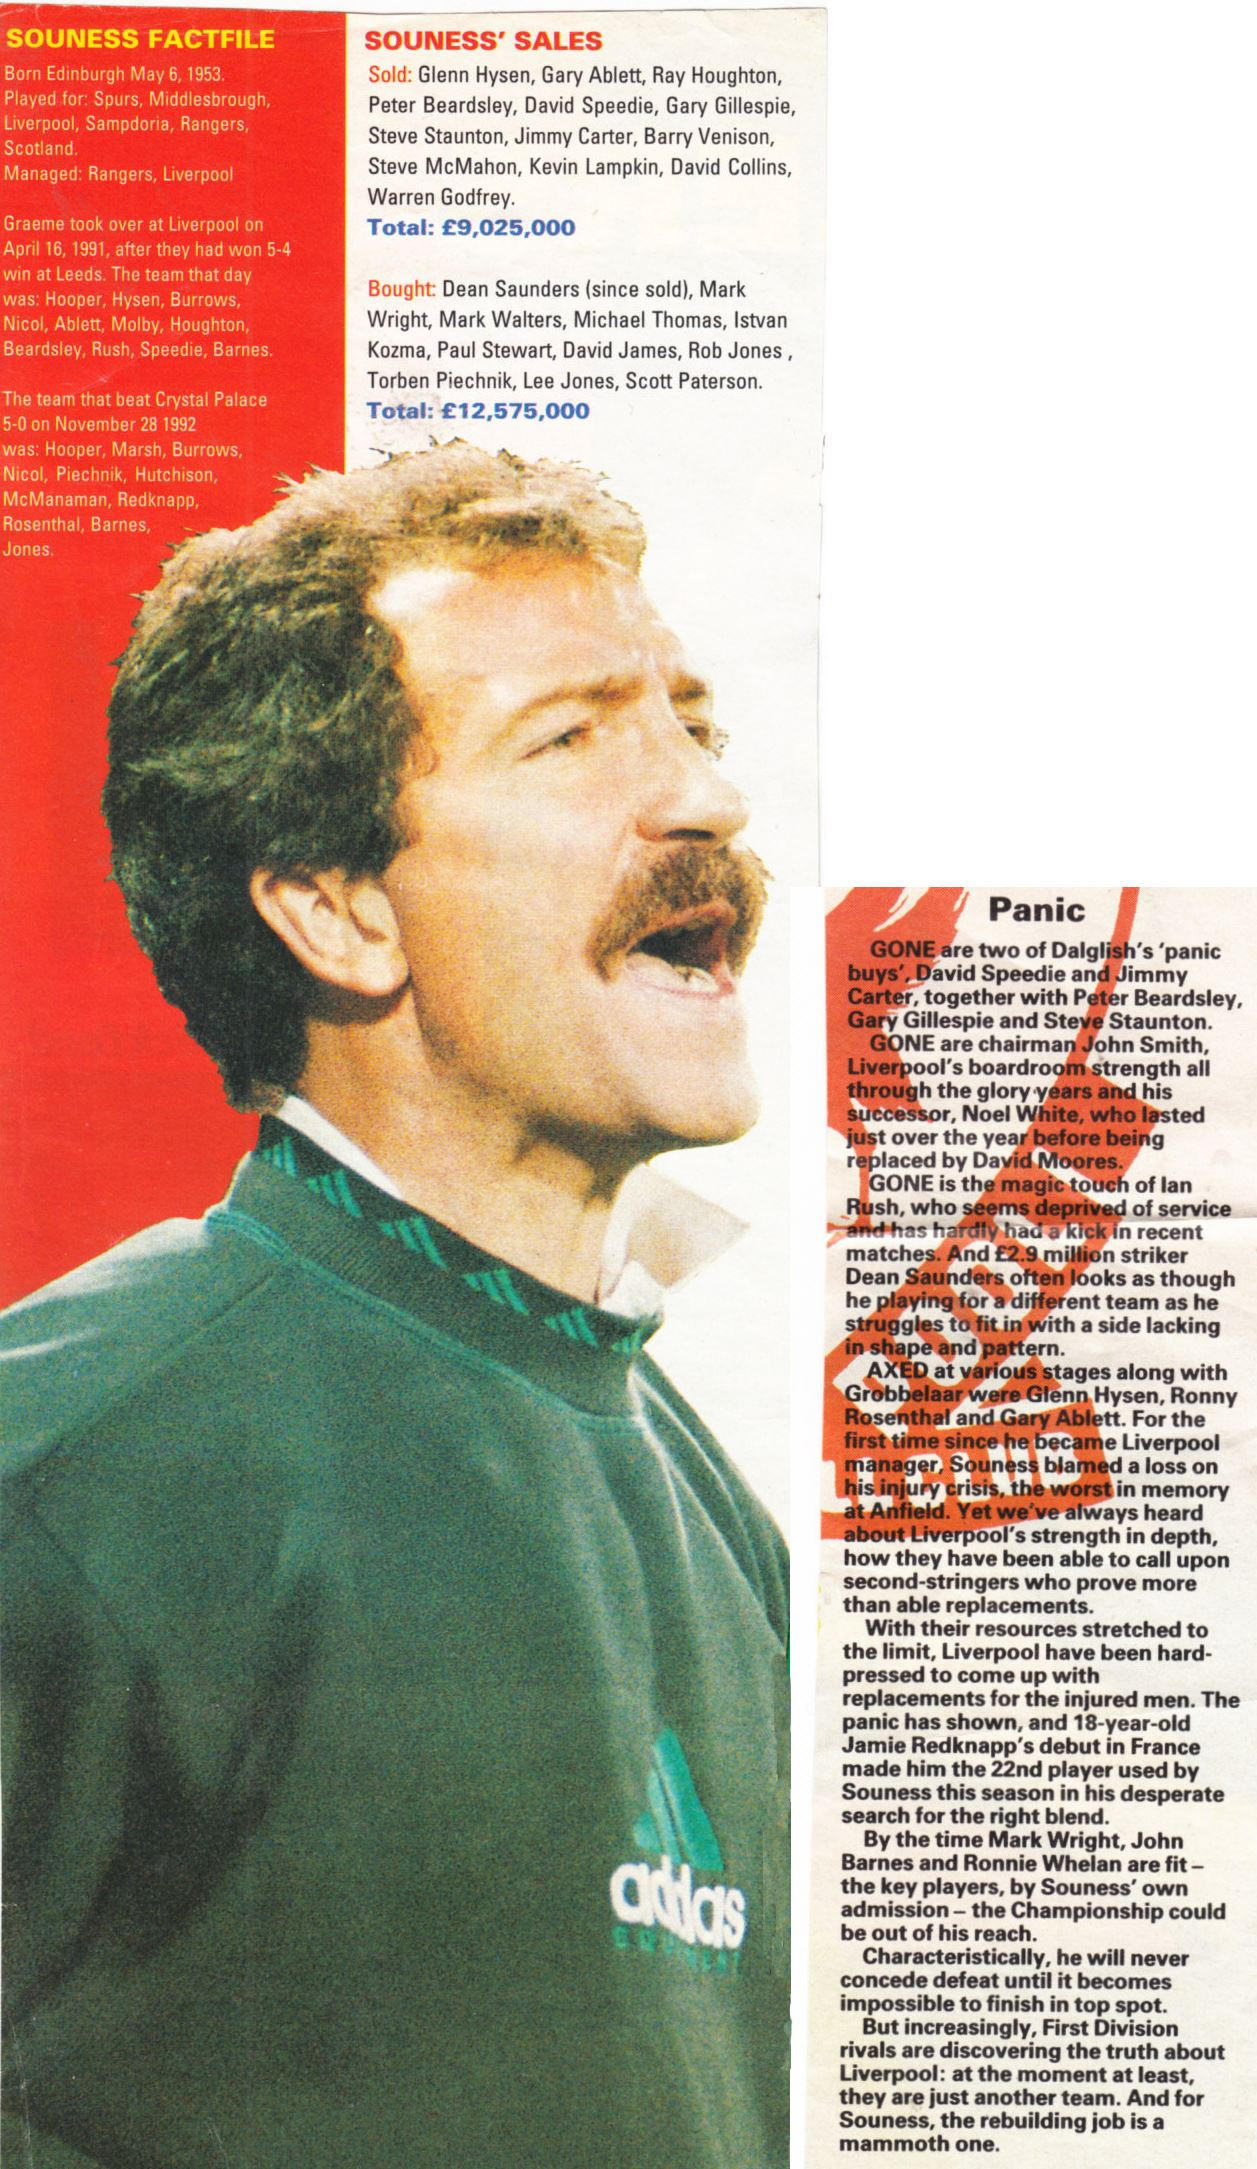 Souness' buys and sales - 1992